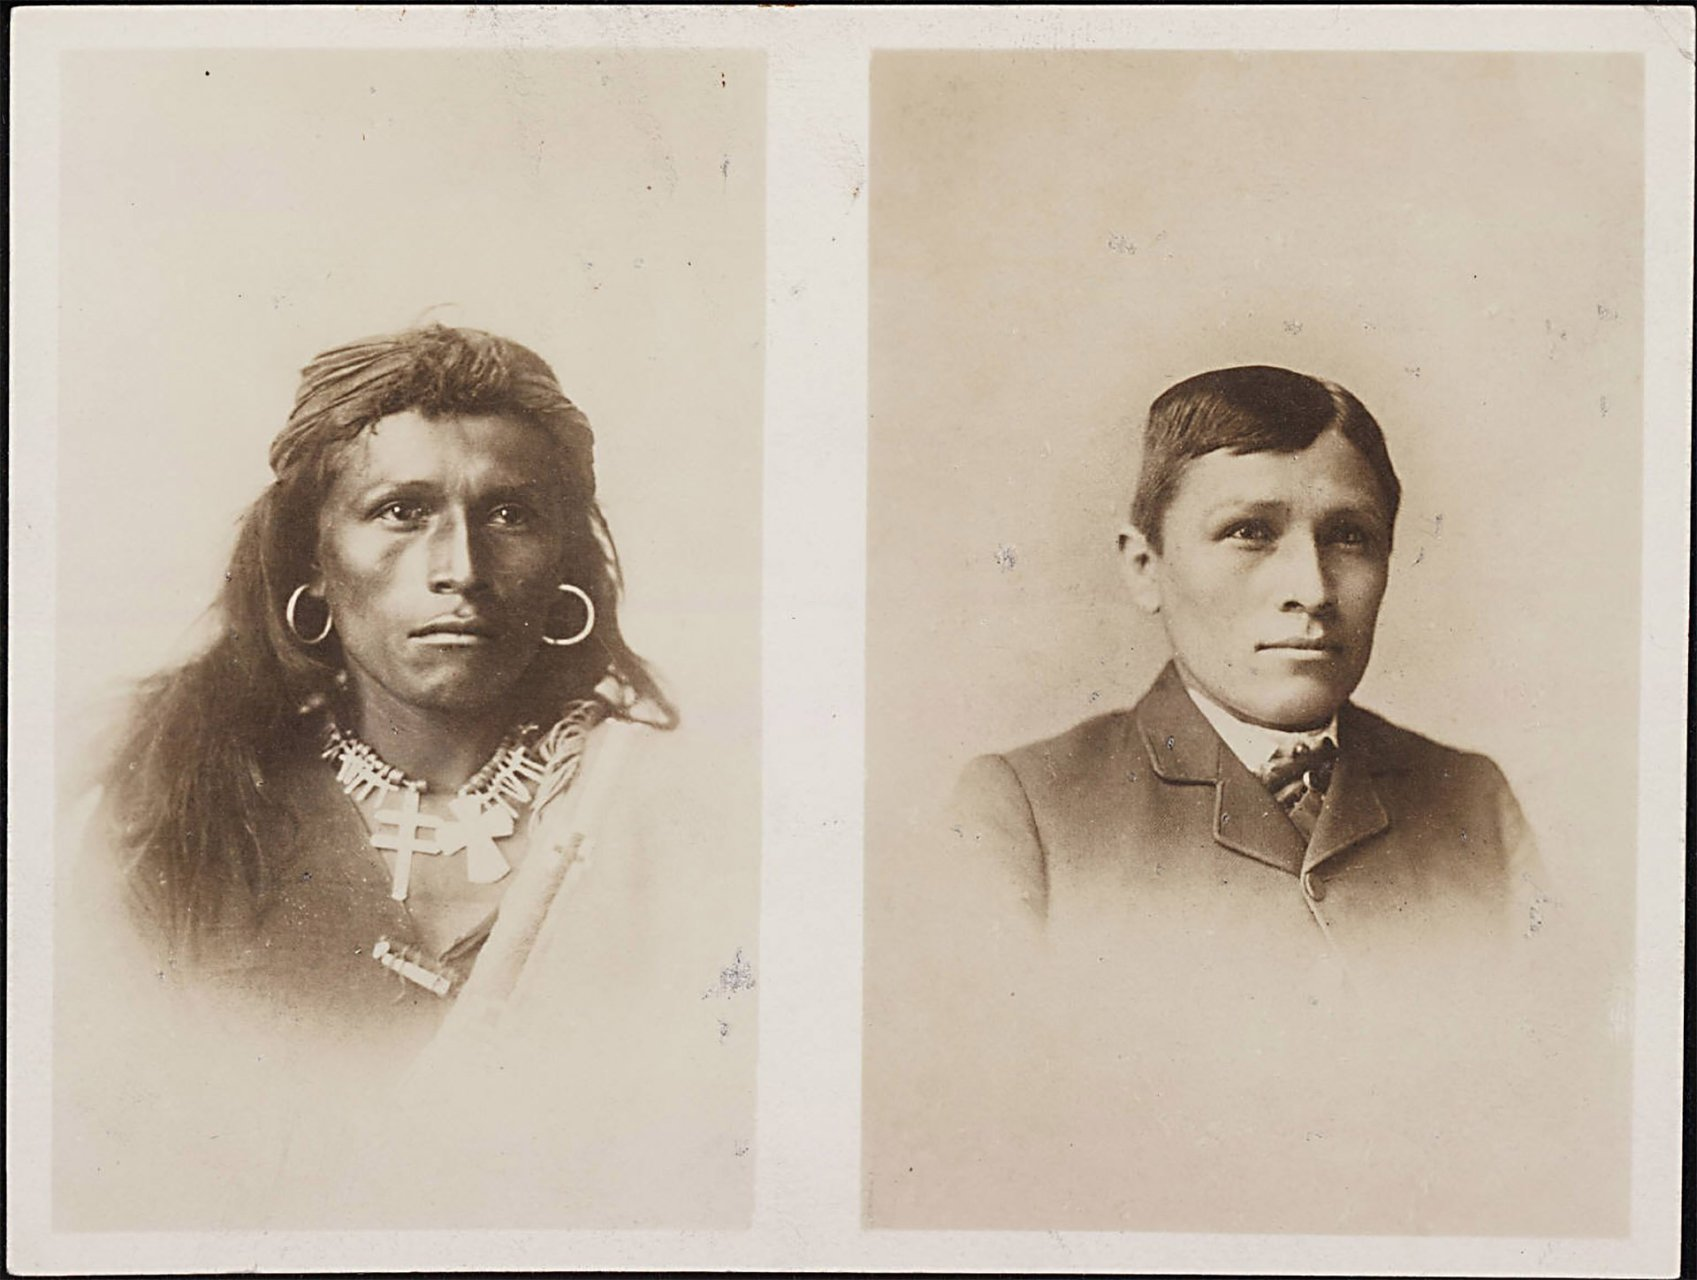 These are the original sepia-toned 1882 and 1885 Tom Torlino portraits. These are the most recognizable photographs of the Carlisle Indian Industrial boarding school, partly because of the stark transformation. There's little known about Tom Torlino beyond his student file, but his portrait has become the symbol of assimilation and the loss of indigenous culture.